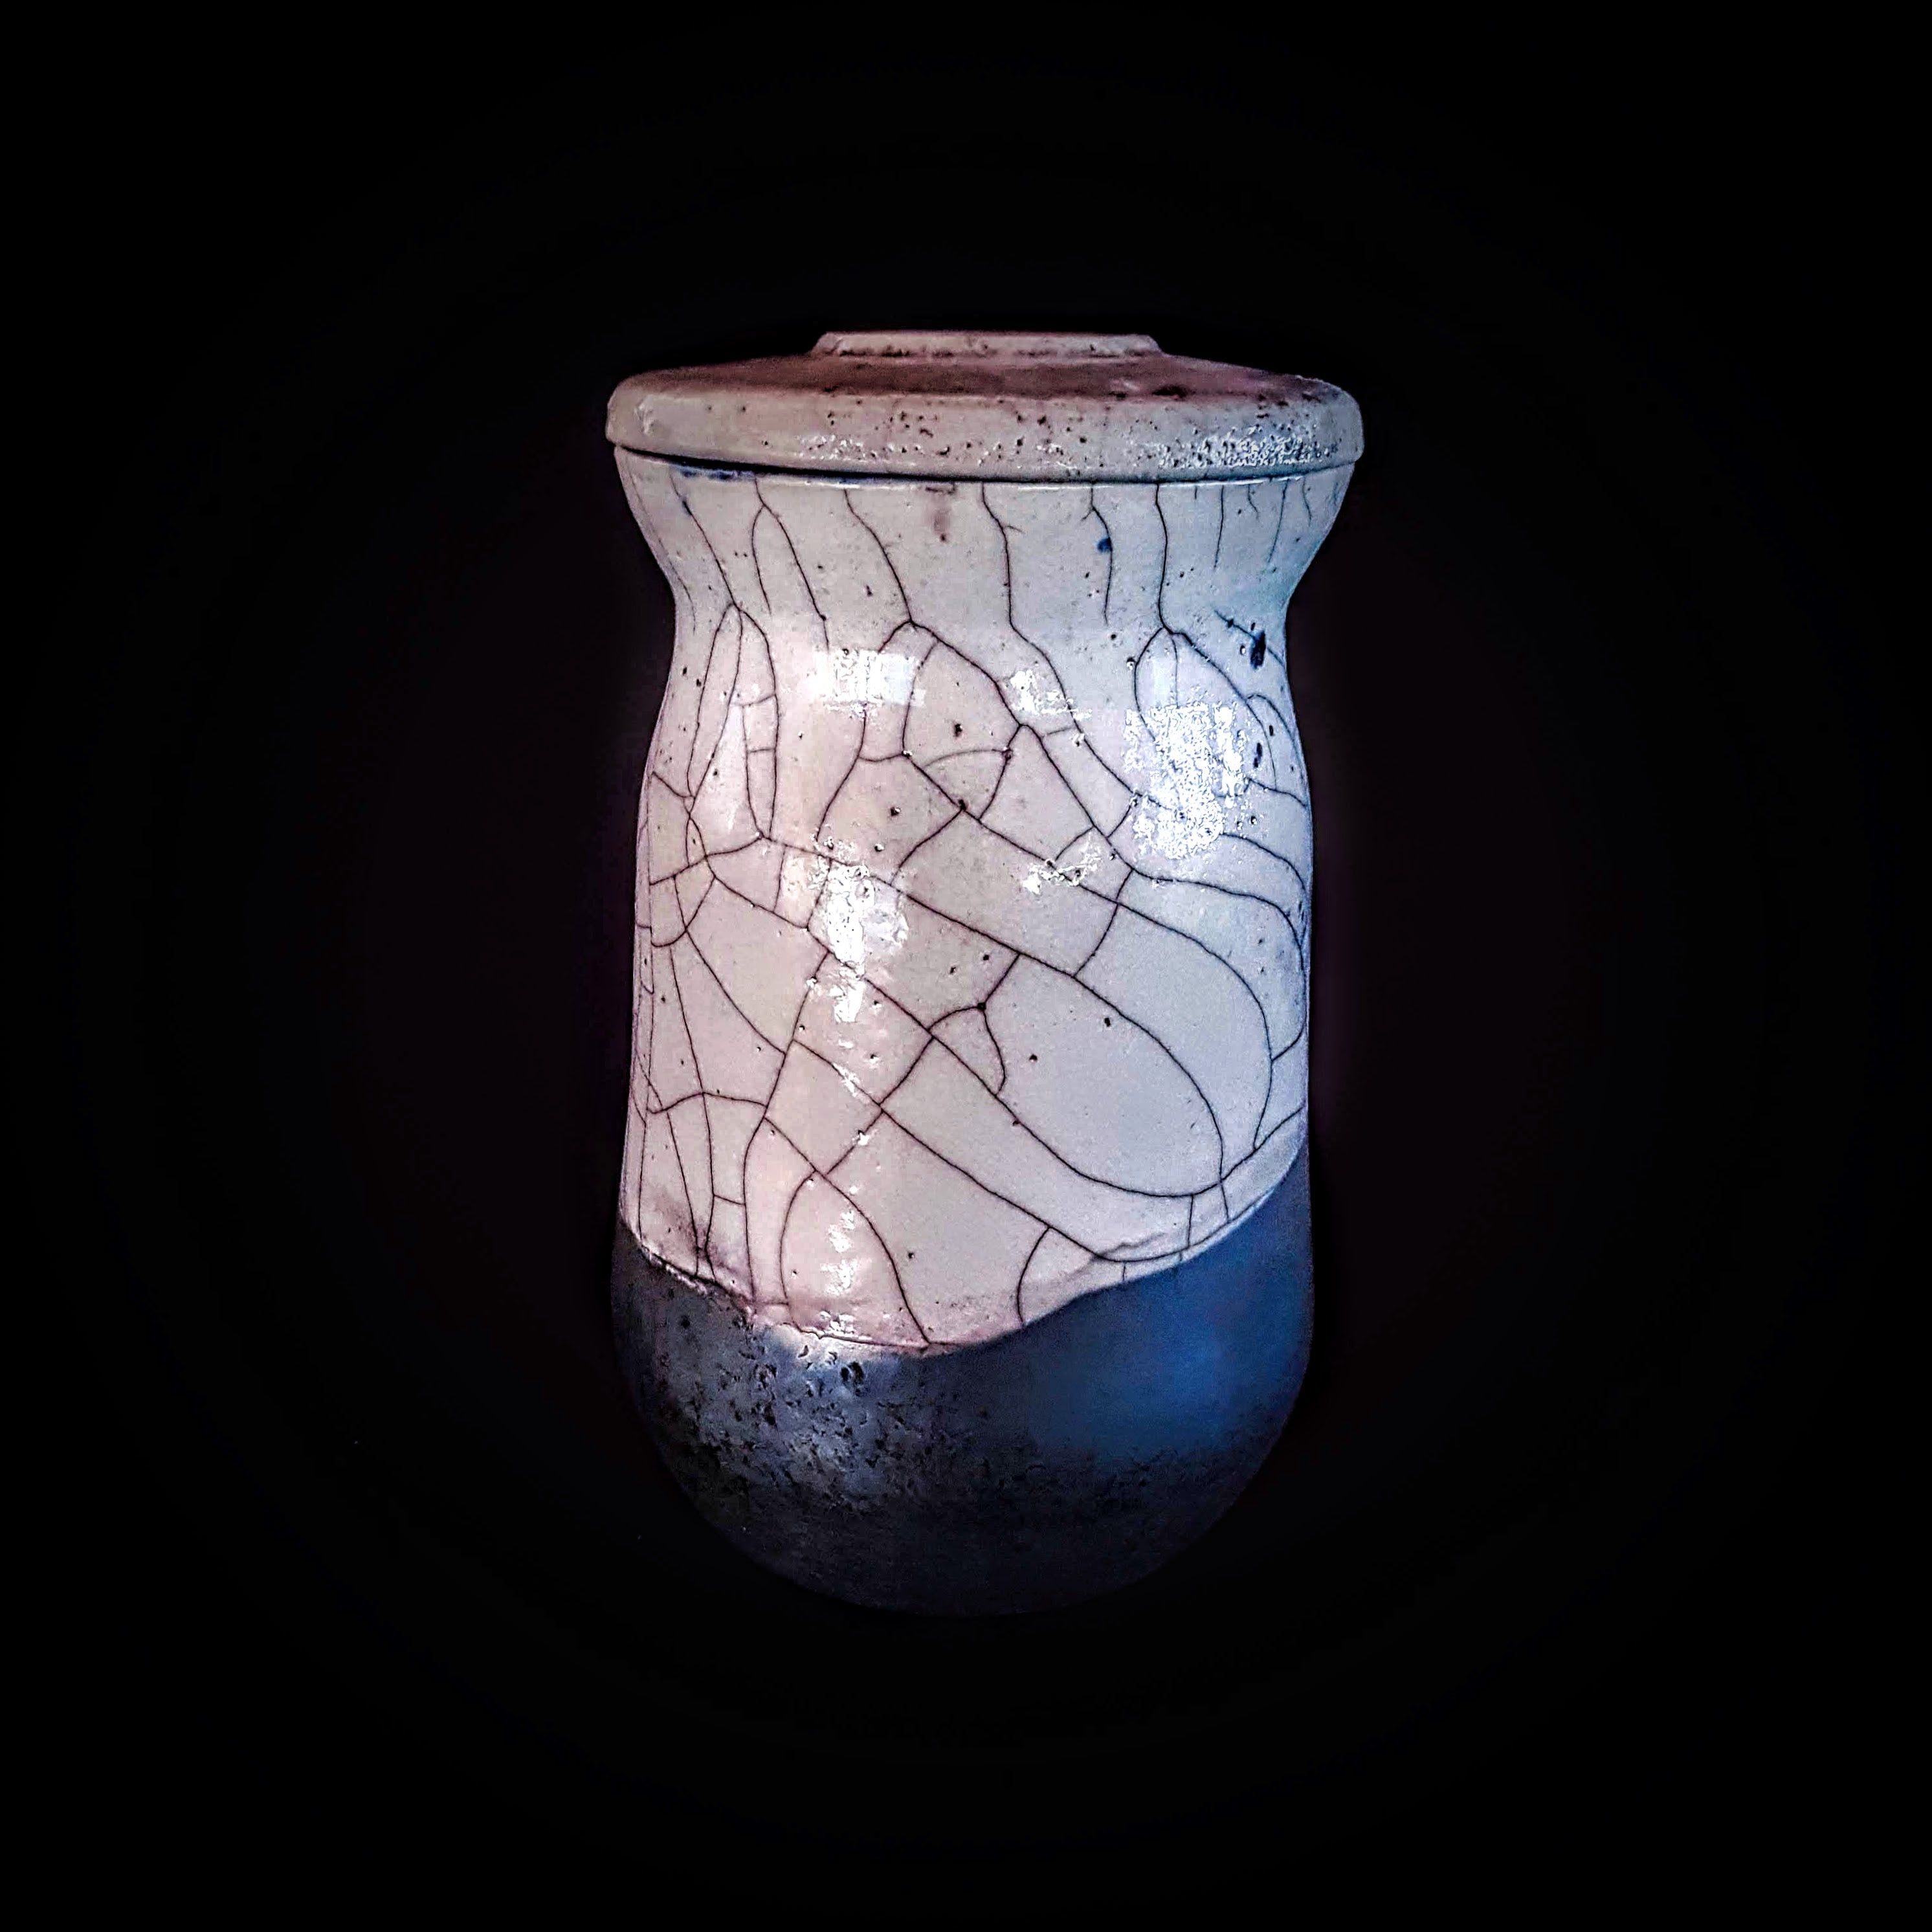 Borders Cremation Urn, Hand Crafted unique Urn by Naiim pottery.